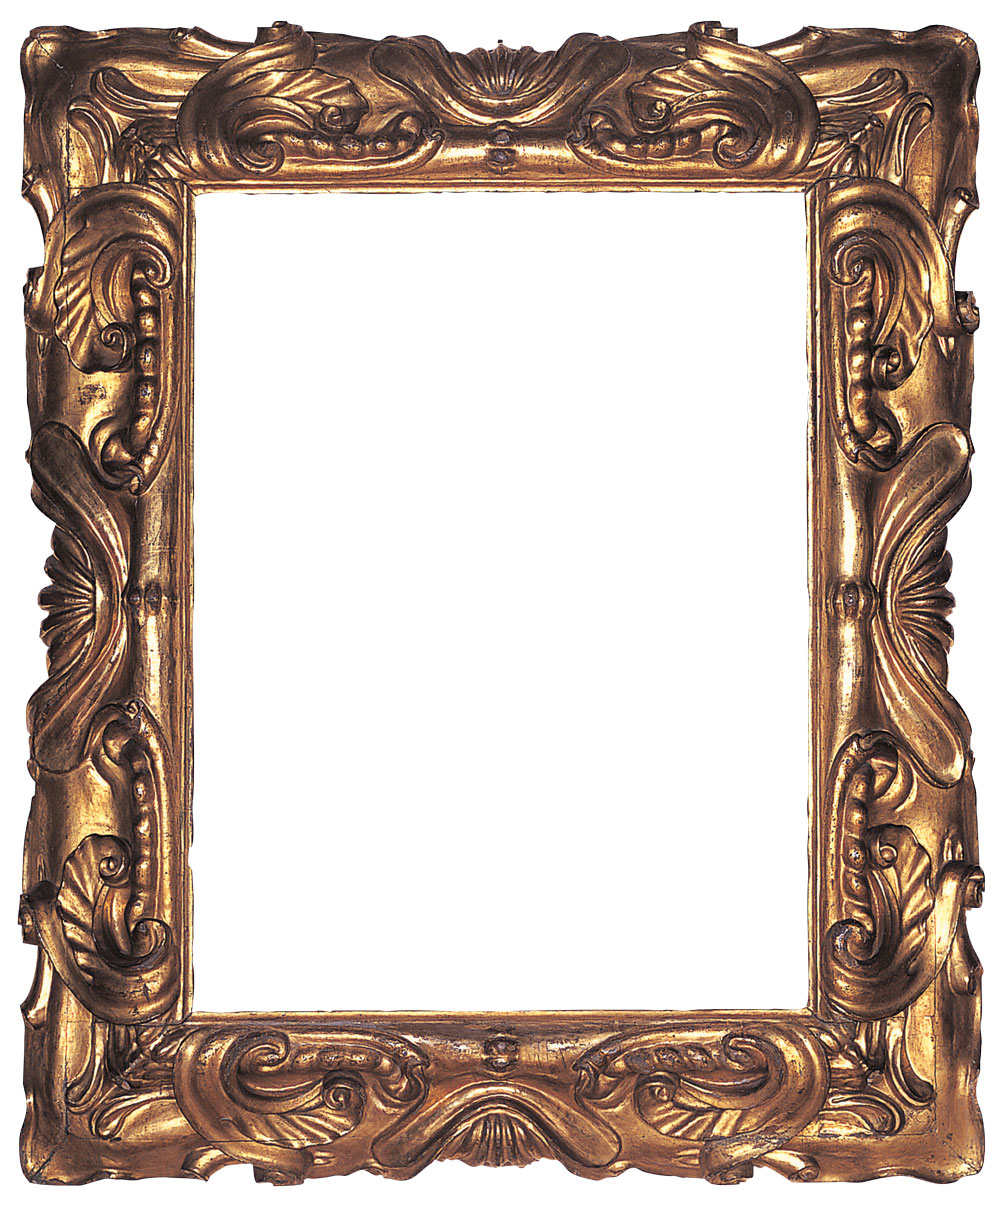 The Lure of Antique Frames by Deborah Davis | Articles